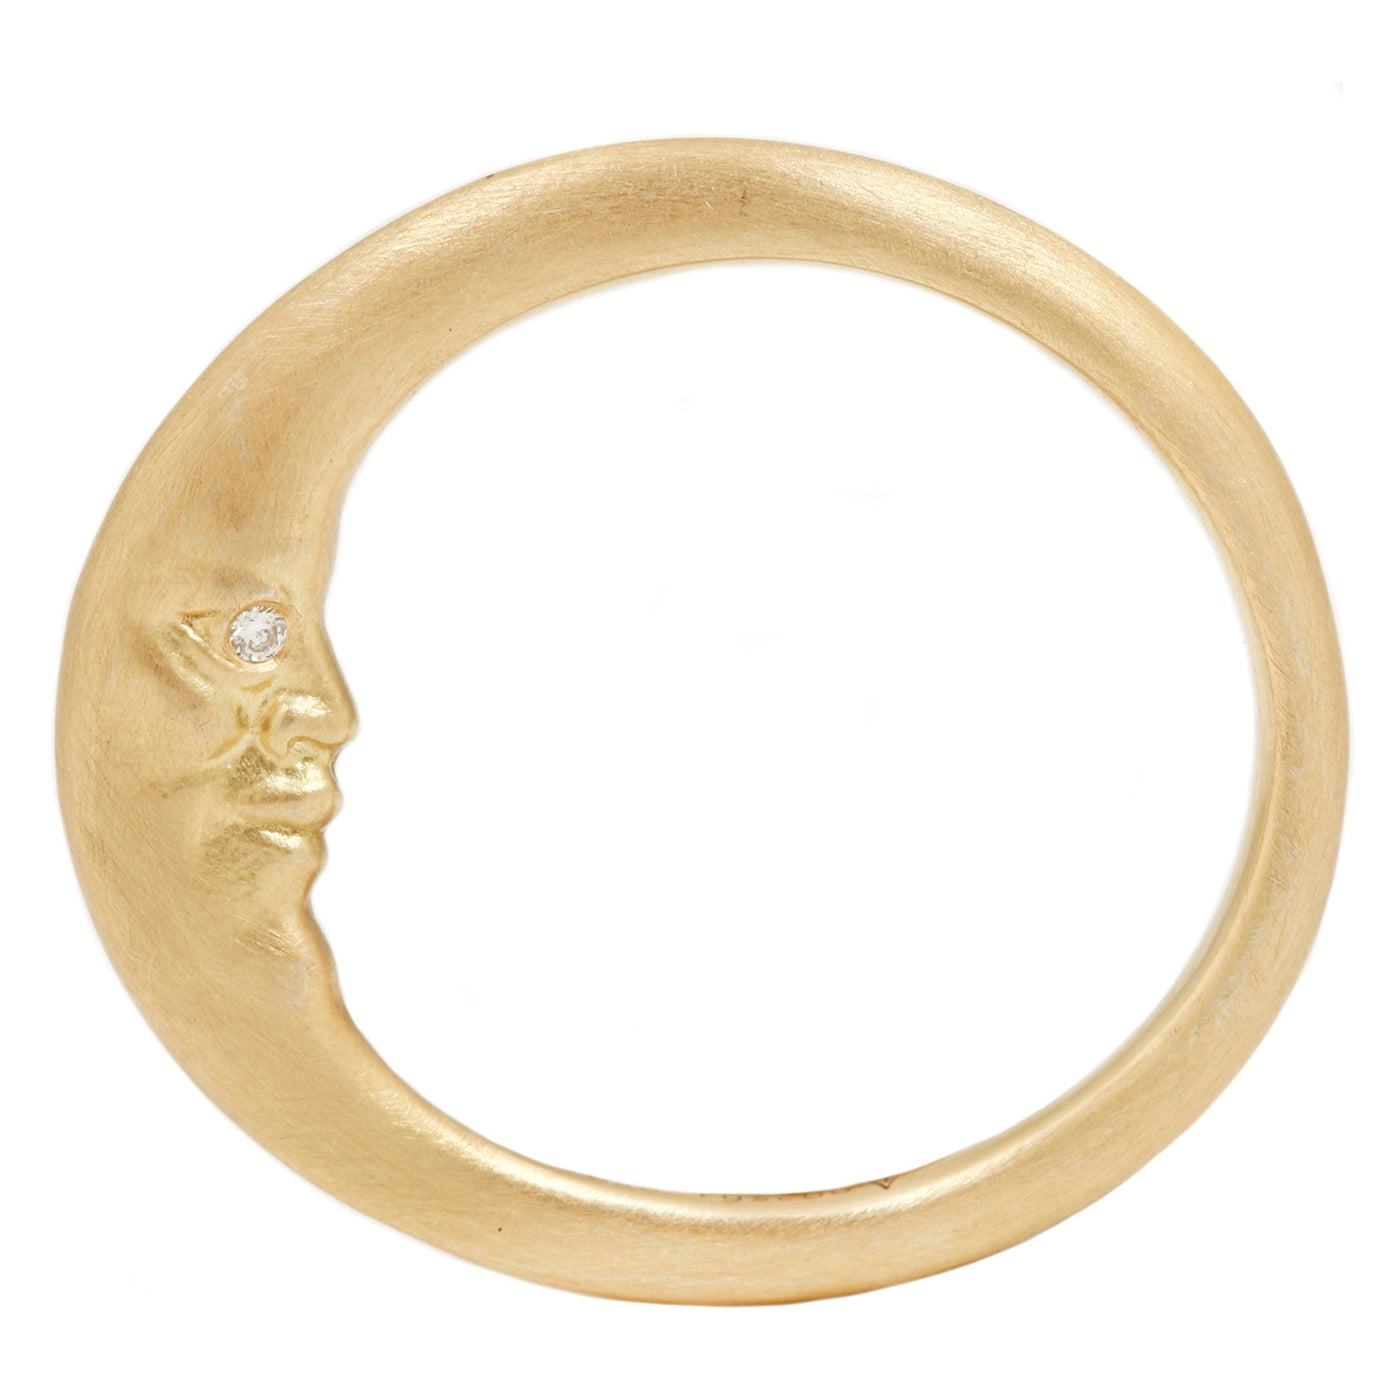 Anthony Lent Gold Crescent Moonface Ring